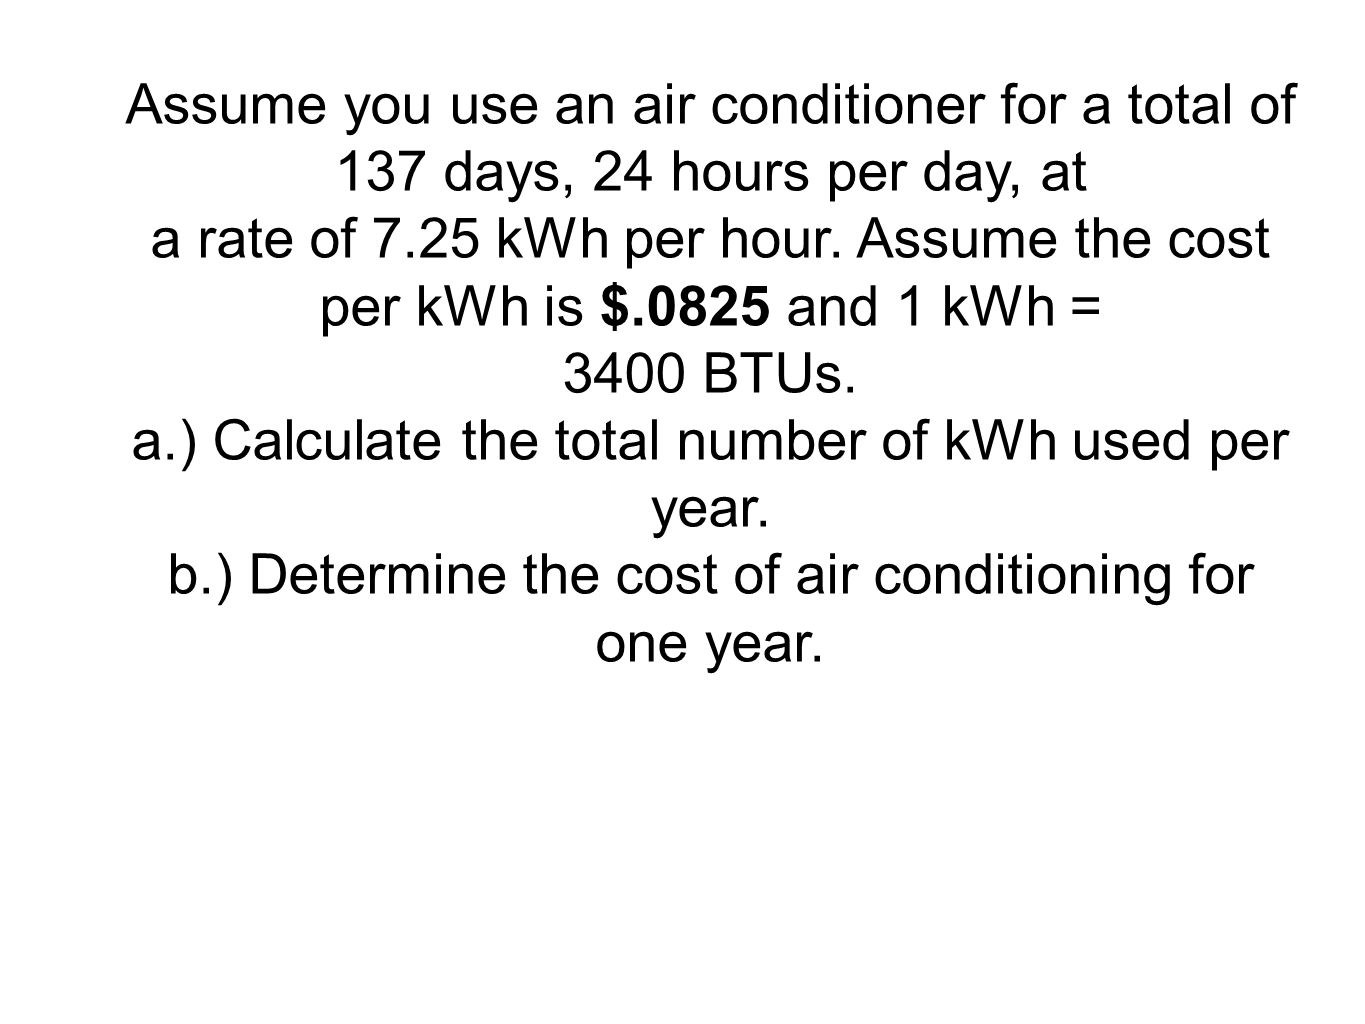 a.) Calculate the total number of kWh used per year.